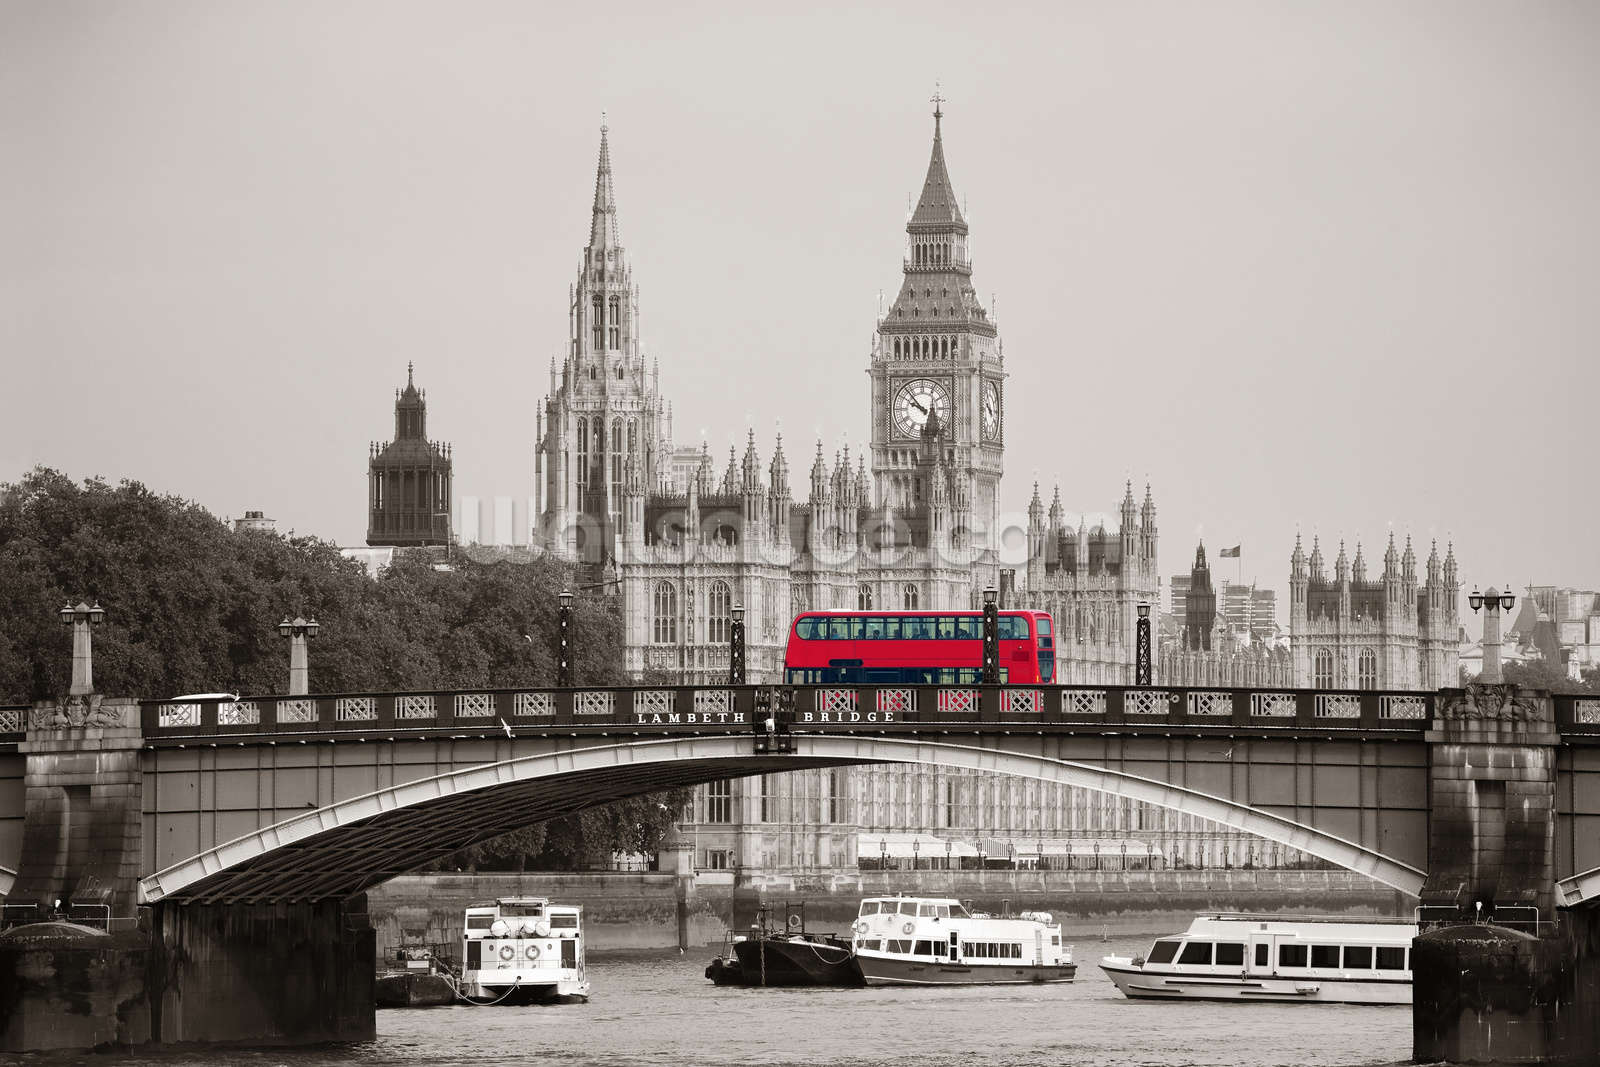 London bus on lambeth bridge wall mural wallpaper wallsauce europe london bus on lambeth bridge wall mural photo wallpaper amipublicfo Choice Image